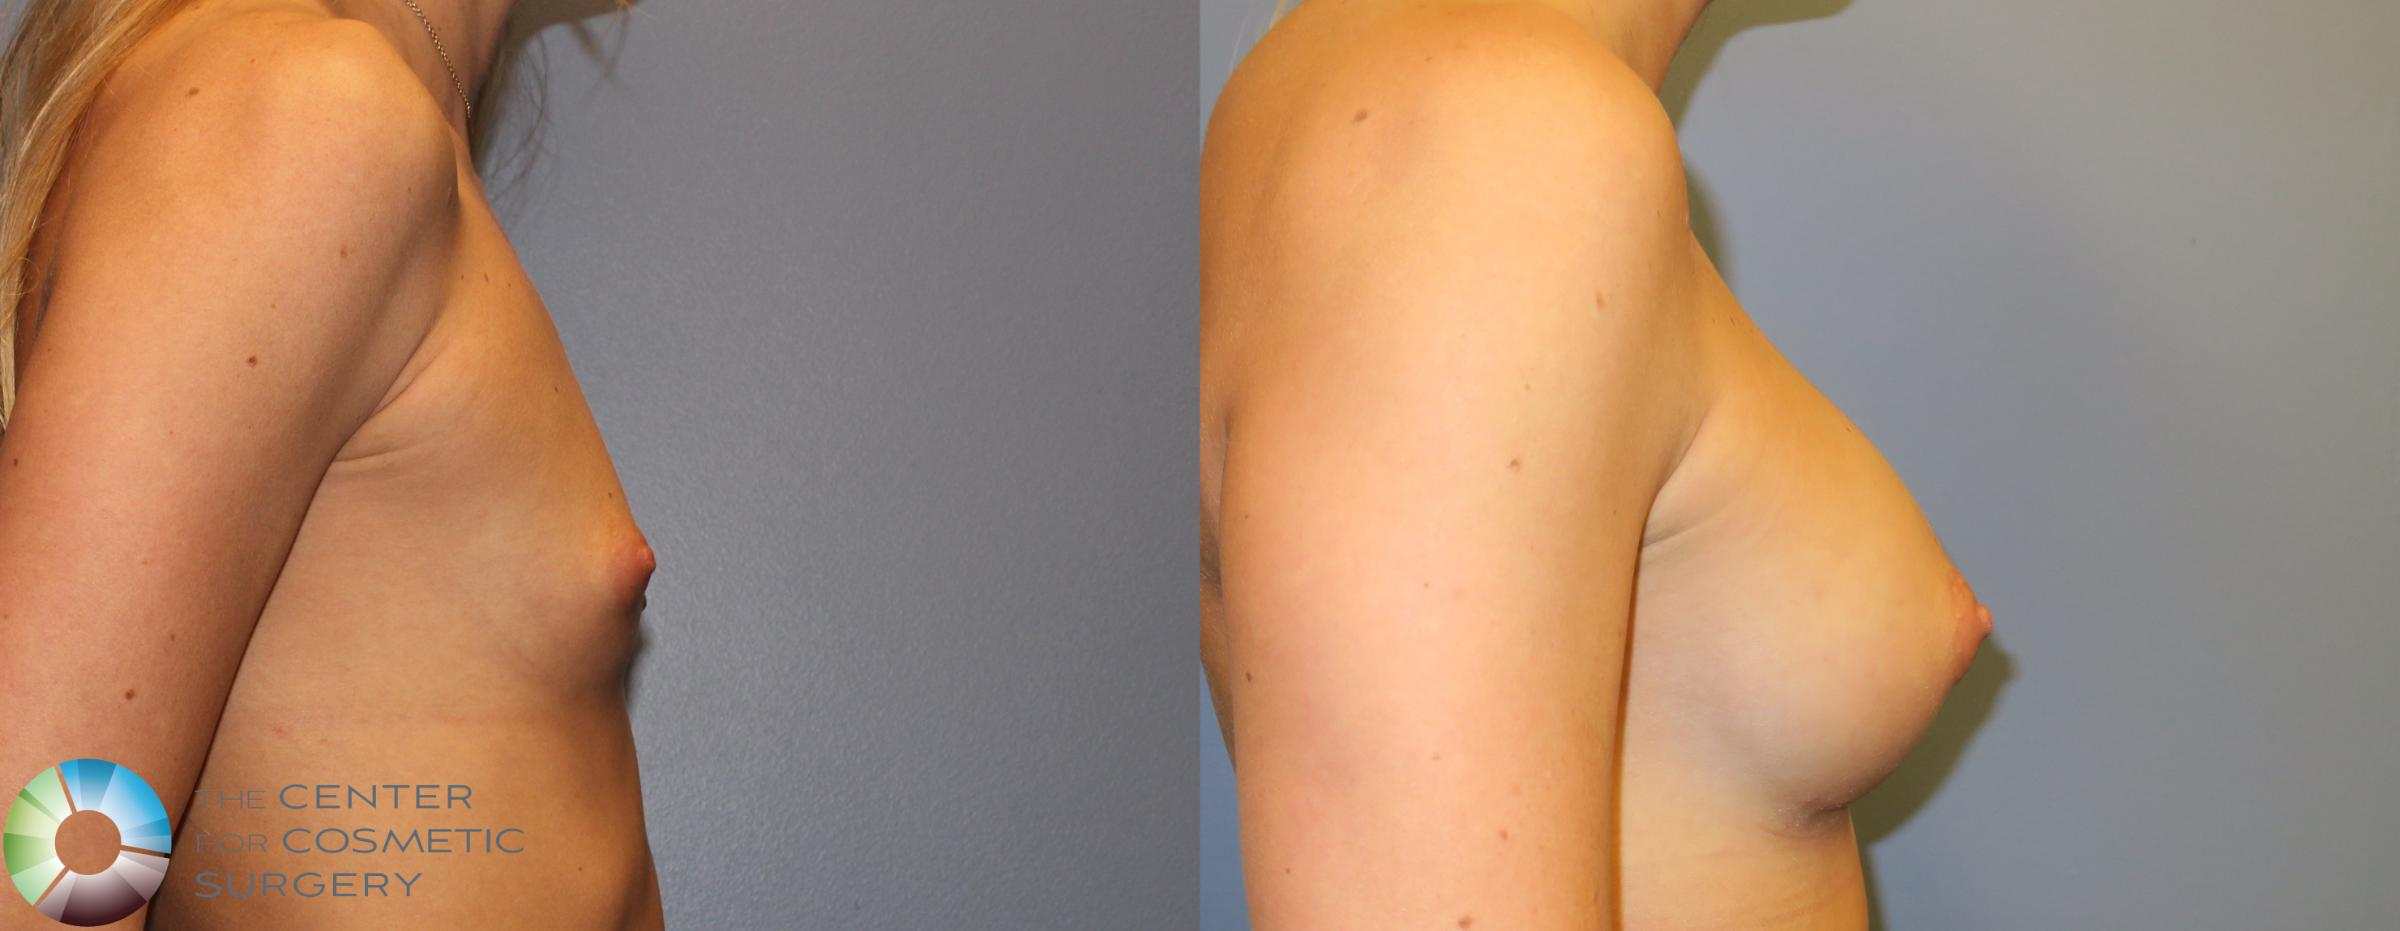 Breast Augmentation Case 828 Before & After View #2 | Golden, CO | The Center for Cosmetic Surgery